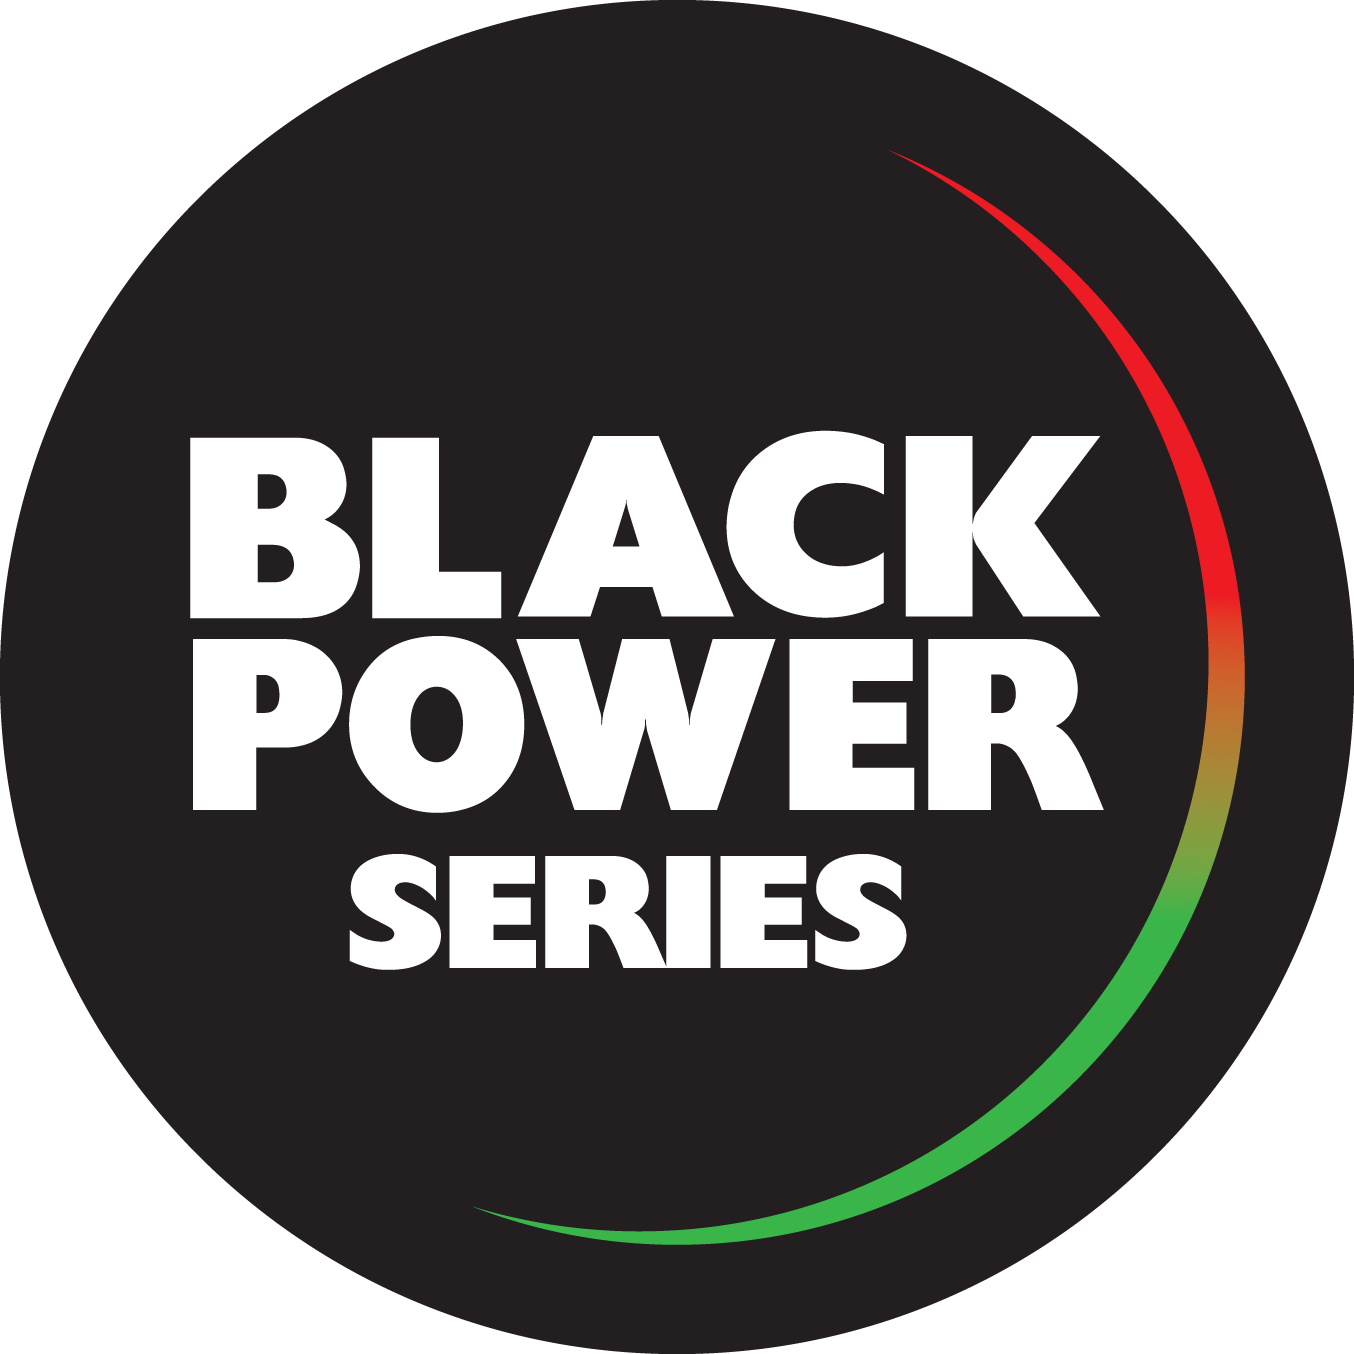 Black Power Series